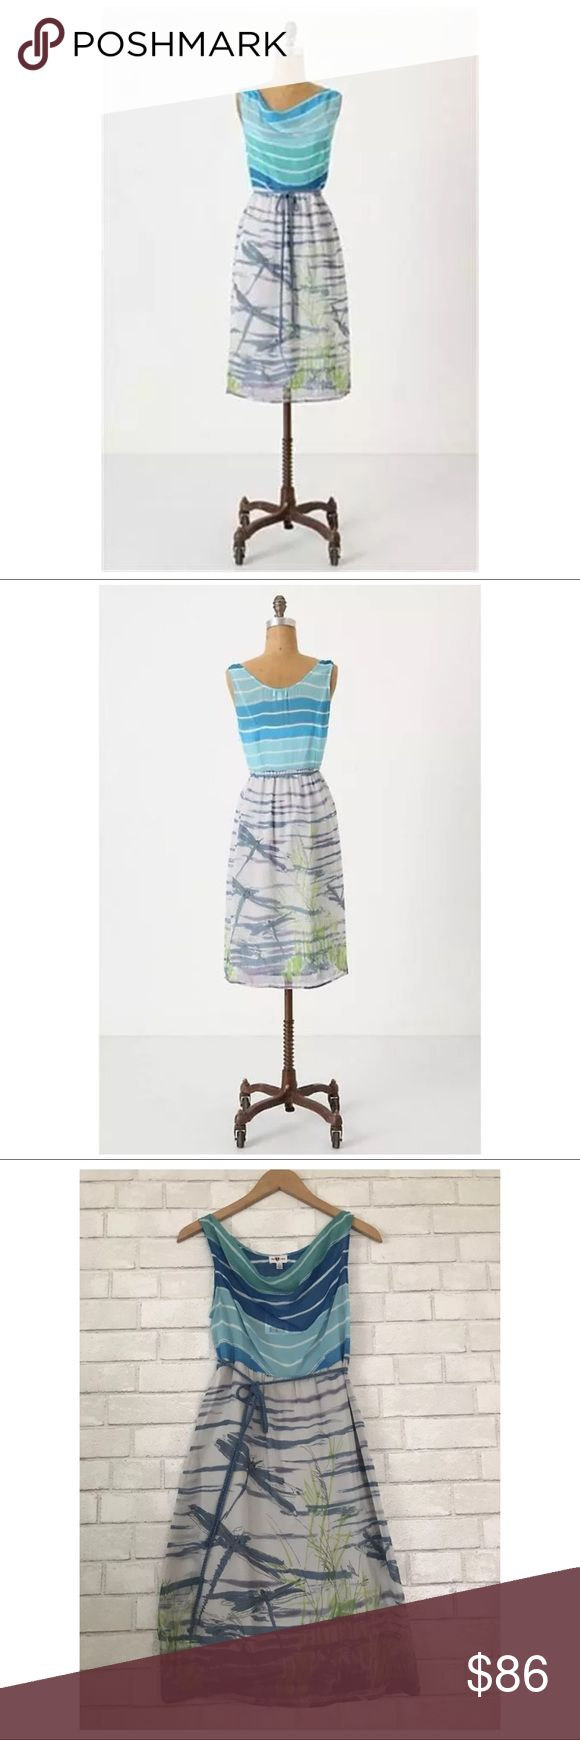 """'Darting Dragonfly' We Love Vera Silk Dress Sz. 6 Gorgeous Anthropologie 'Darting Dragonfly' We Love Vera Silk Chiffon Dress, Sz. 6.   """"Fast flyers whiz from blade to blade beneath a clear blue horizon.""""  * Polyester, acetate lining * Belt included * Side zip * Machine Wash * Retailed $148 Anthropologie Dresses Maxi"""